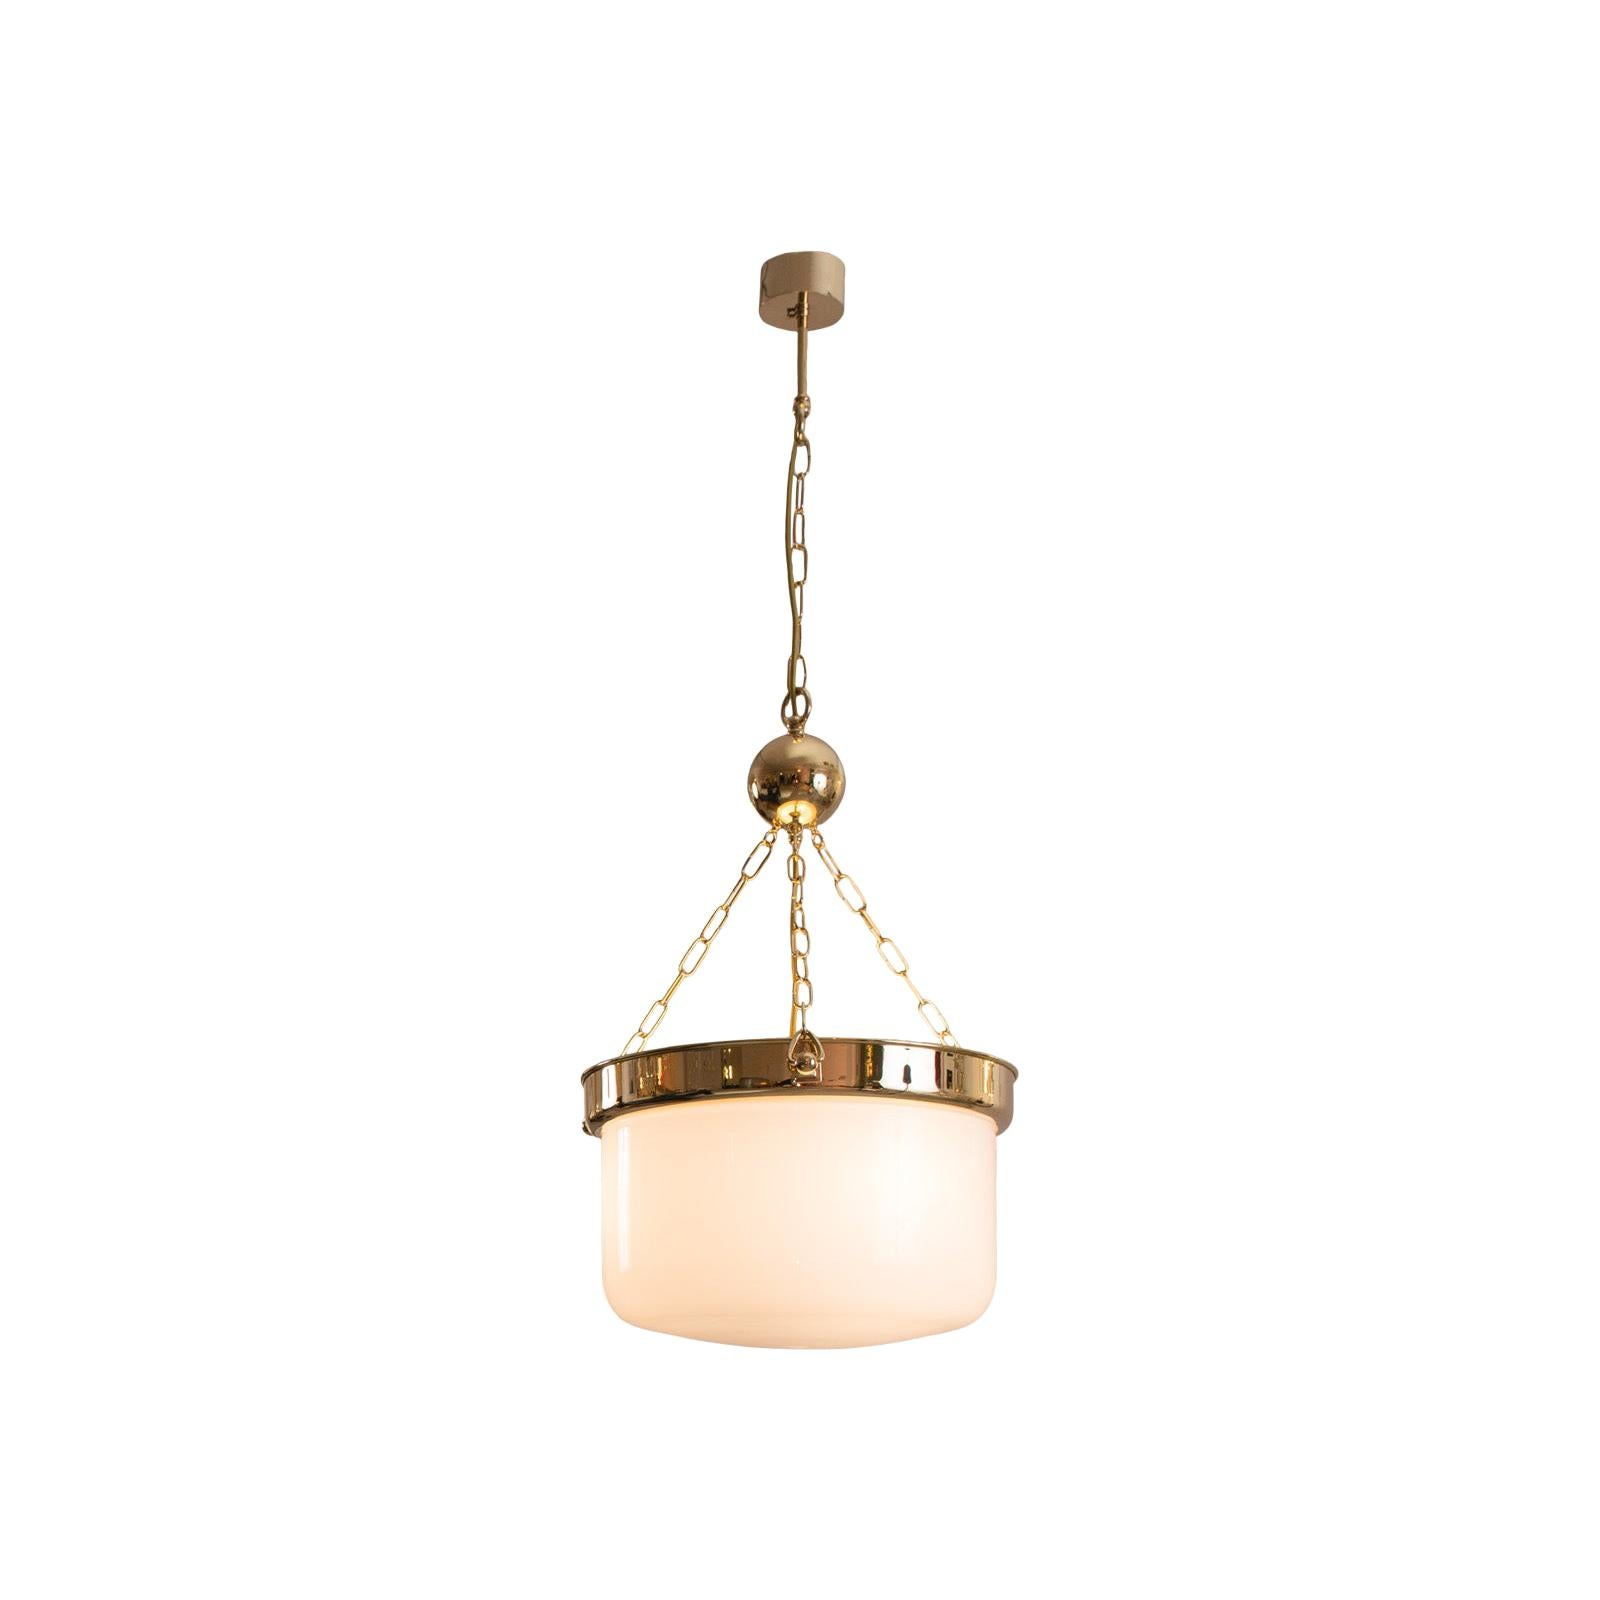 Adolf Loos Jugendstil Ceiling Lamp from the Looshaus in Vienna, Re-Edition